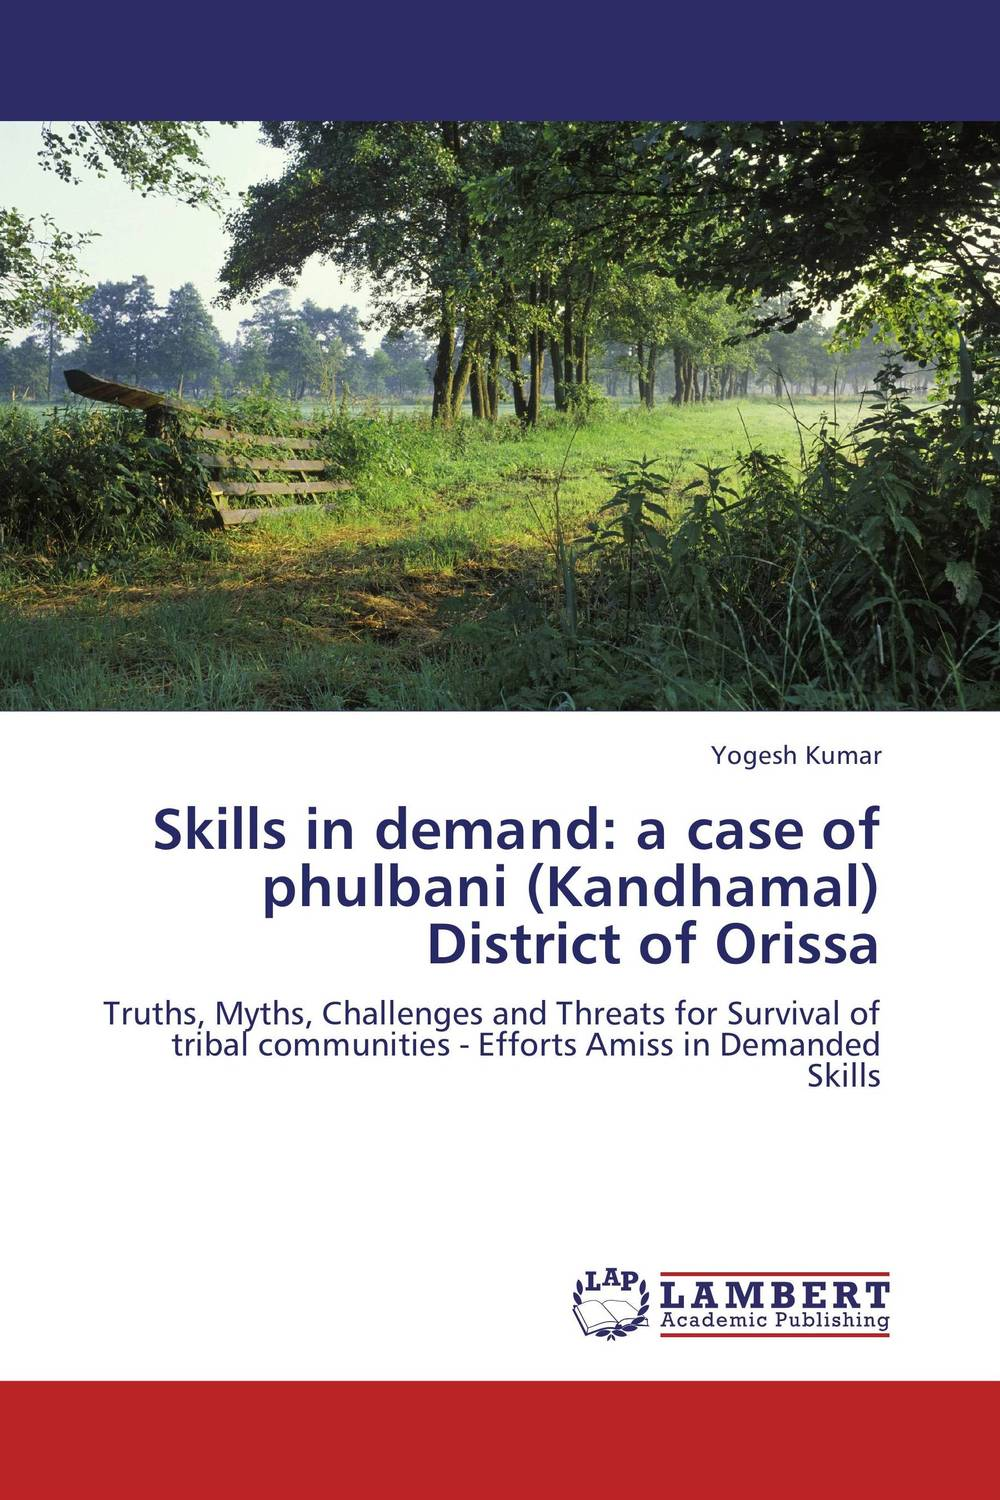 Skills in demand: a case of phulbani (Kandhamal) District of Orissa alan roxburgh missional map making skills for leading in times of transition